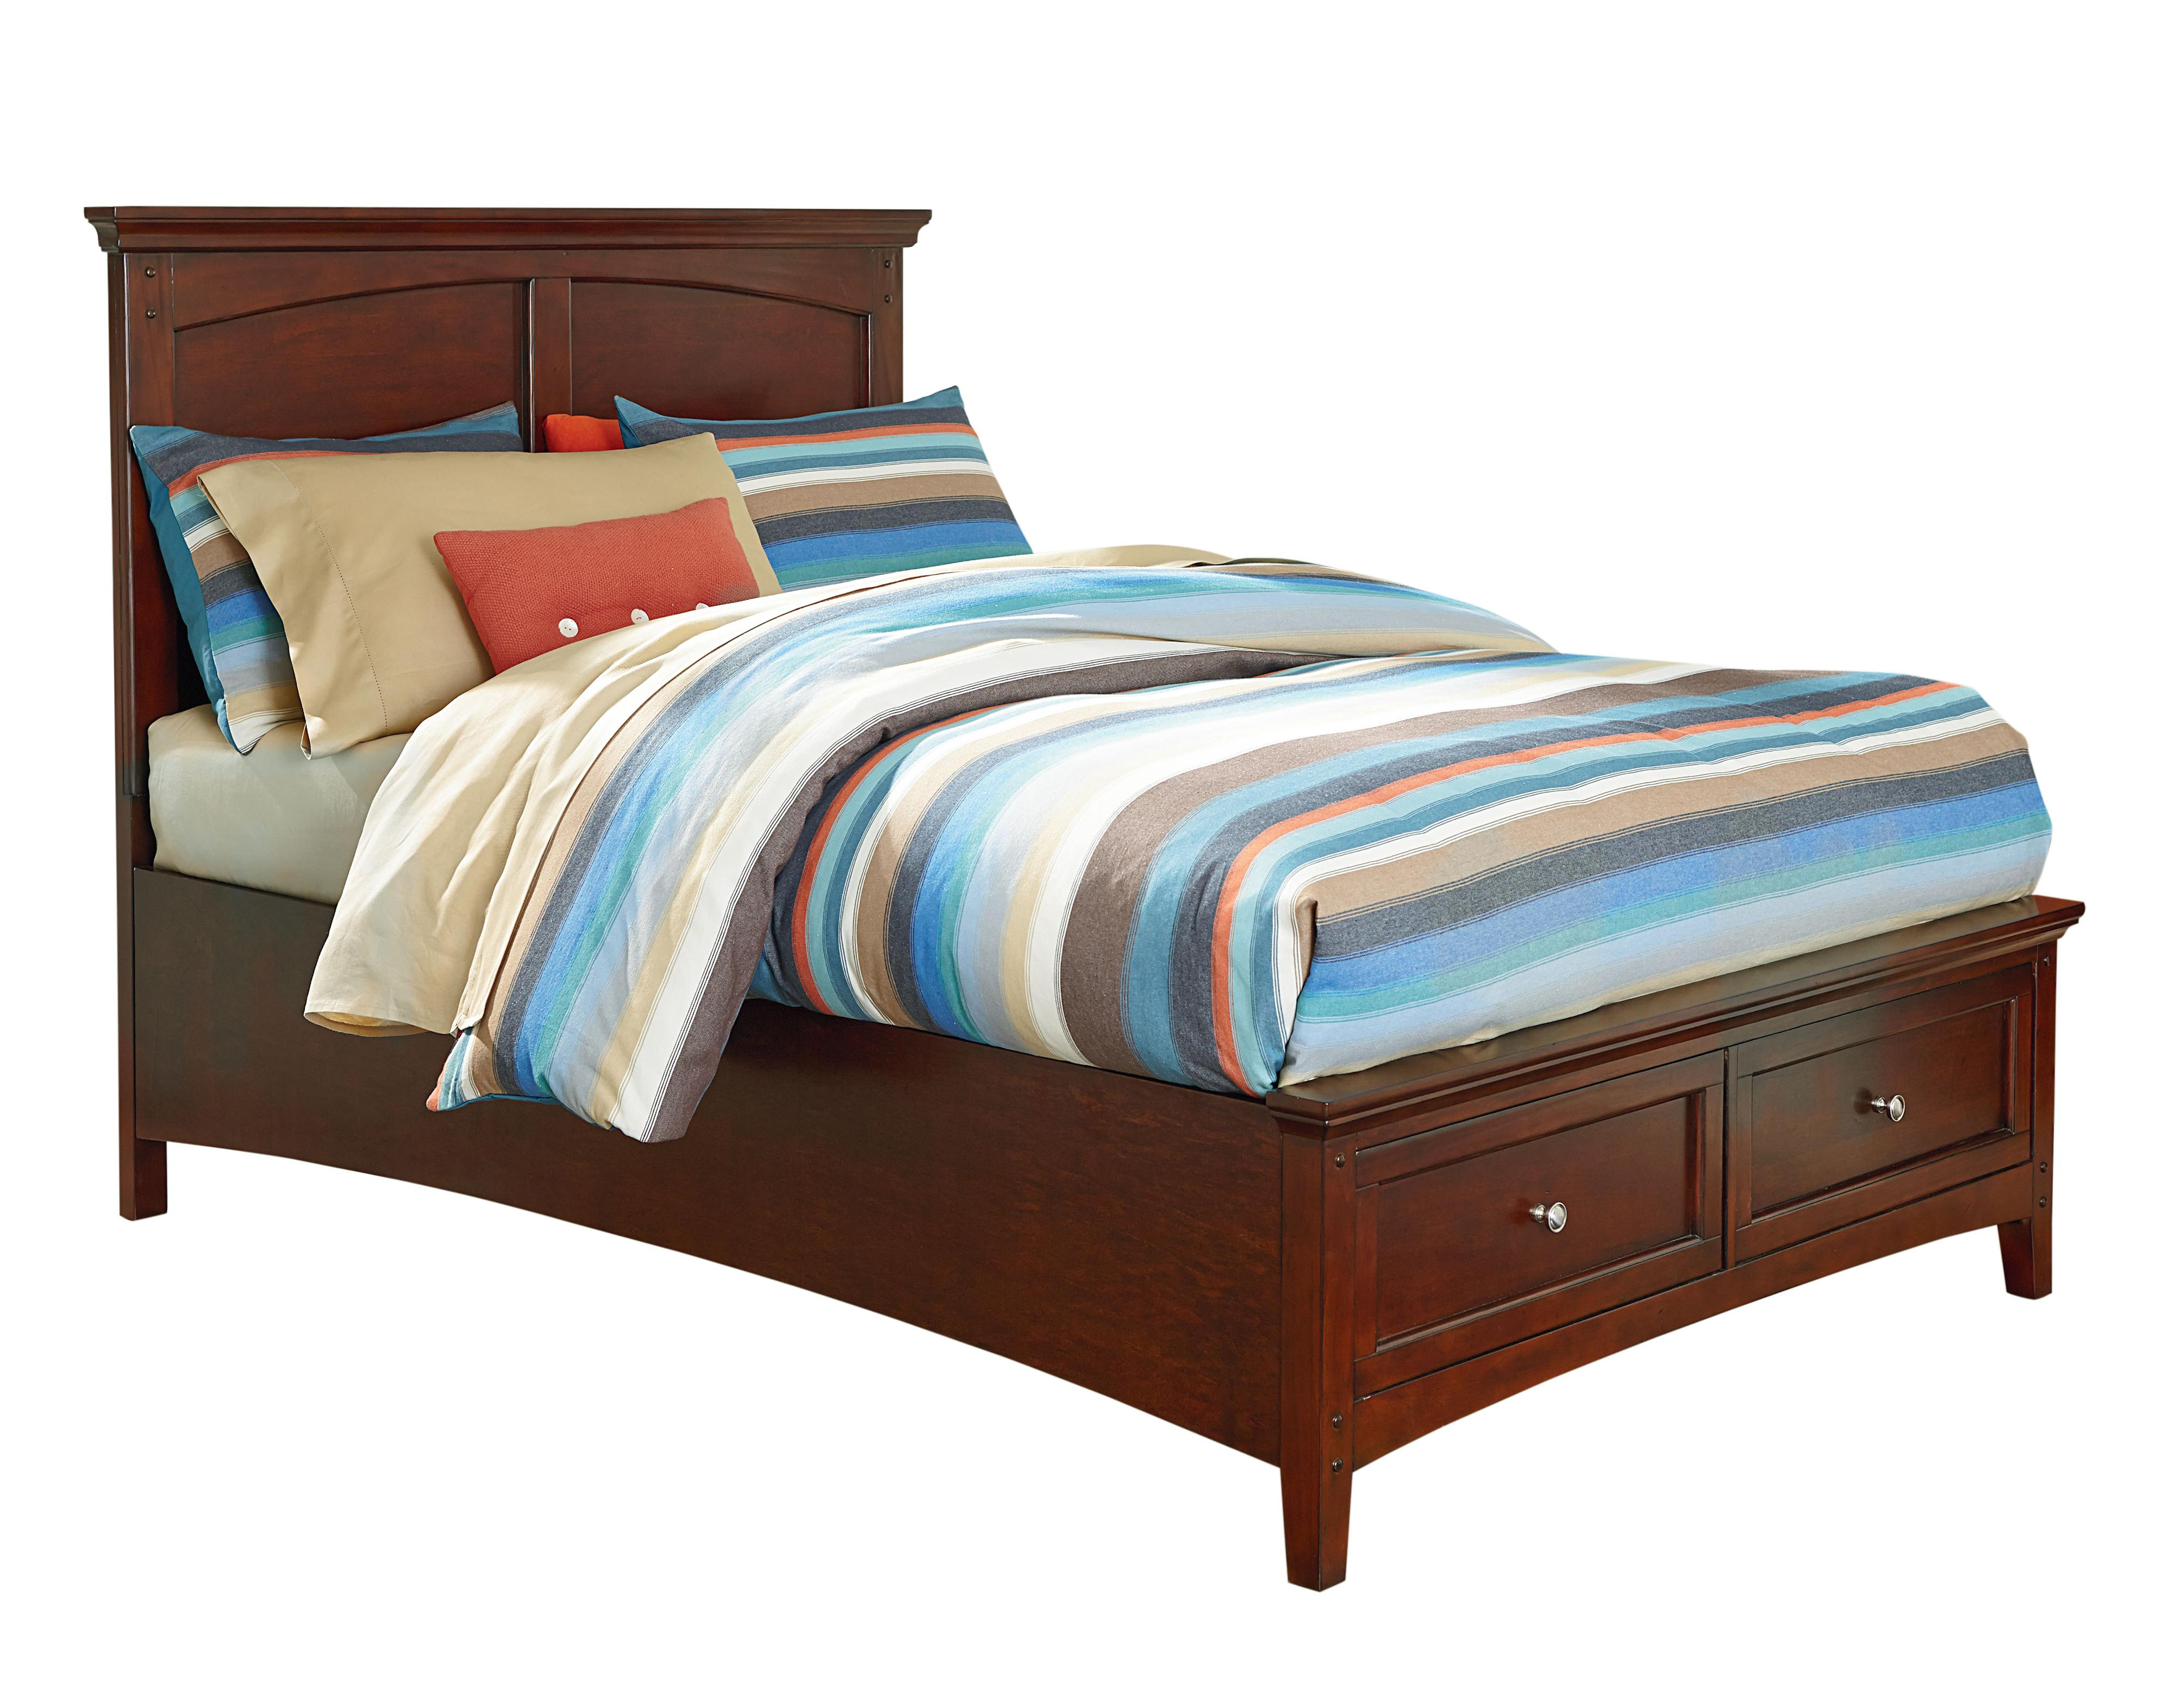 Standard Furniture Cooperstown Full Storage Bed - Item Number: 93844+45+42